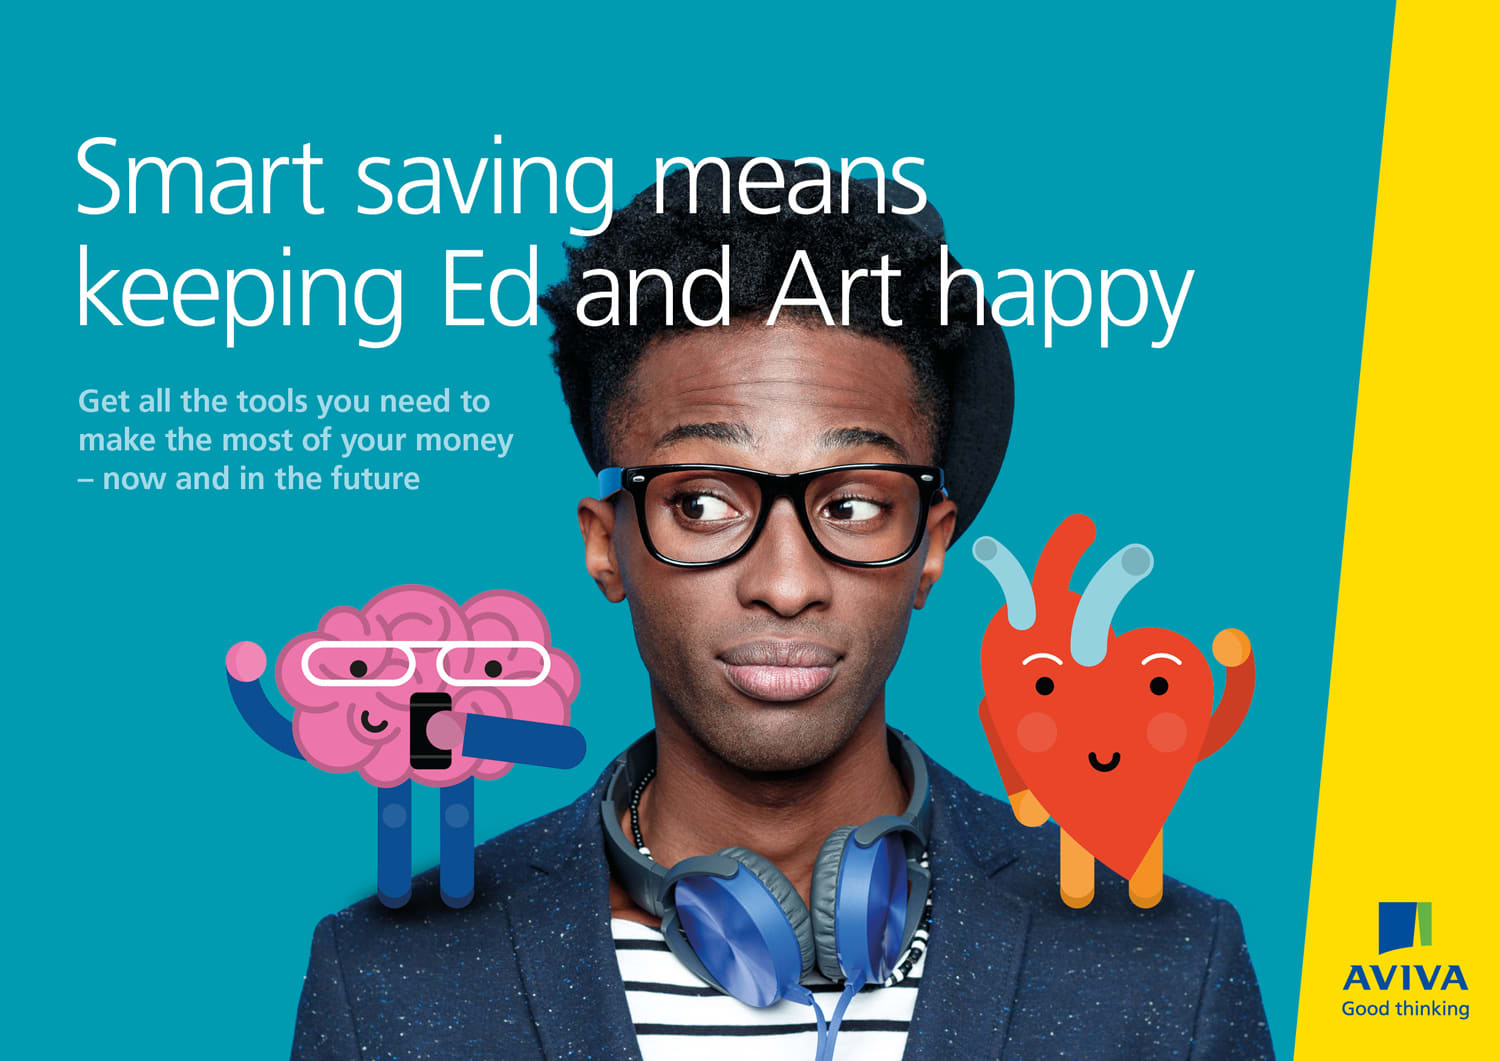 Aviva - Save Smart with Ed and Art - campaign concept